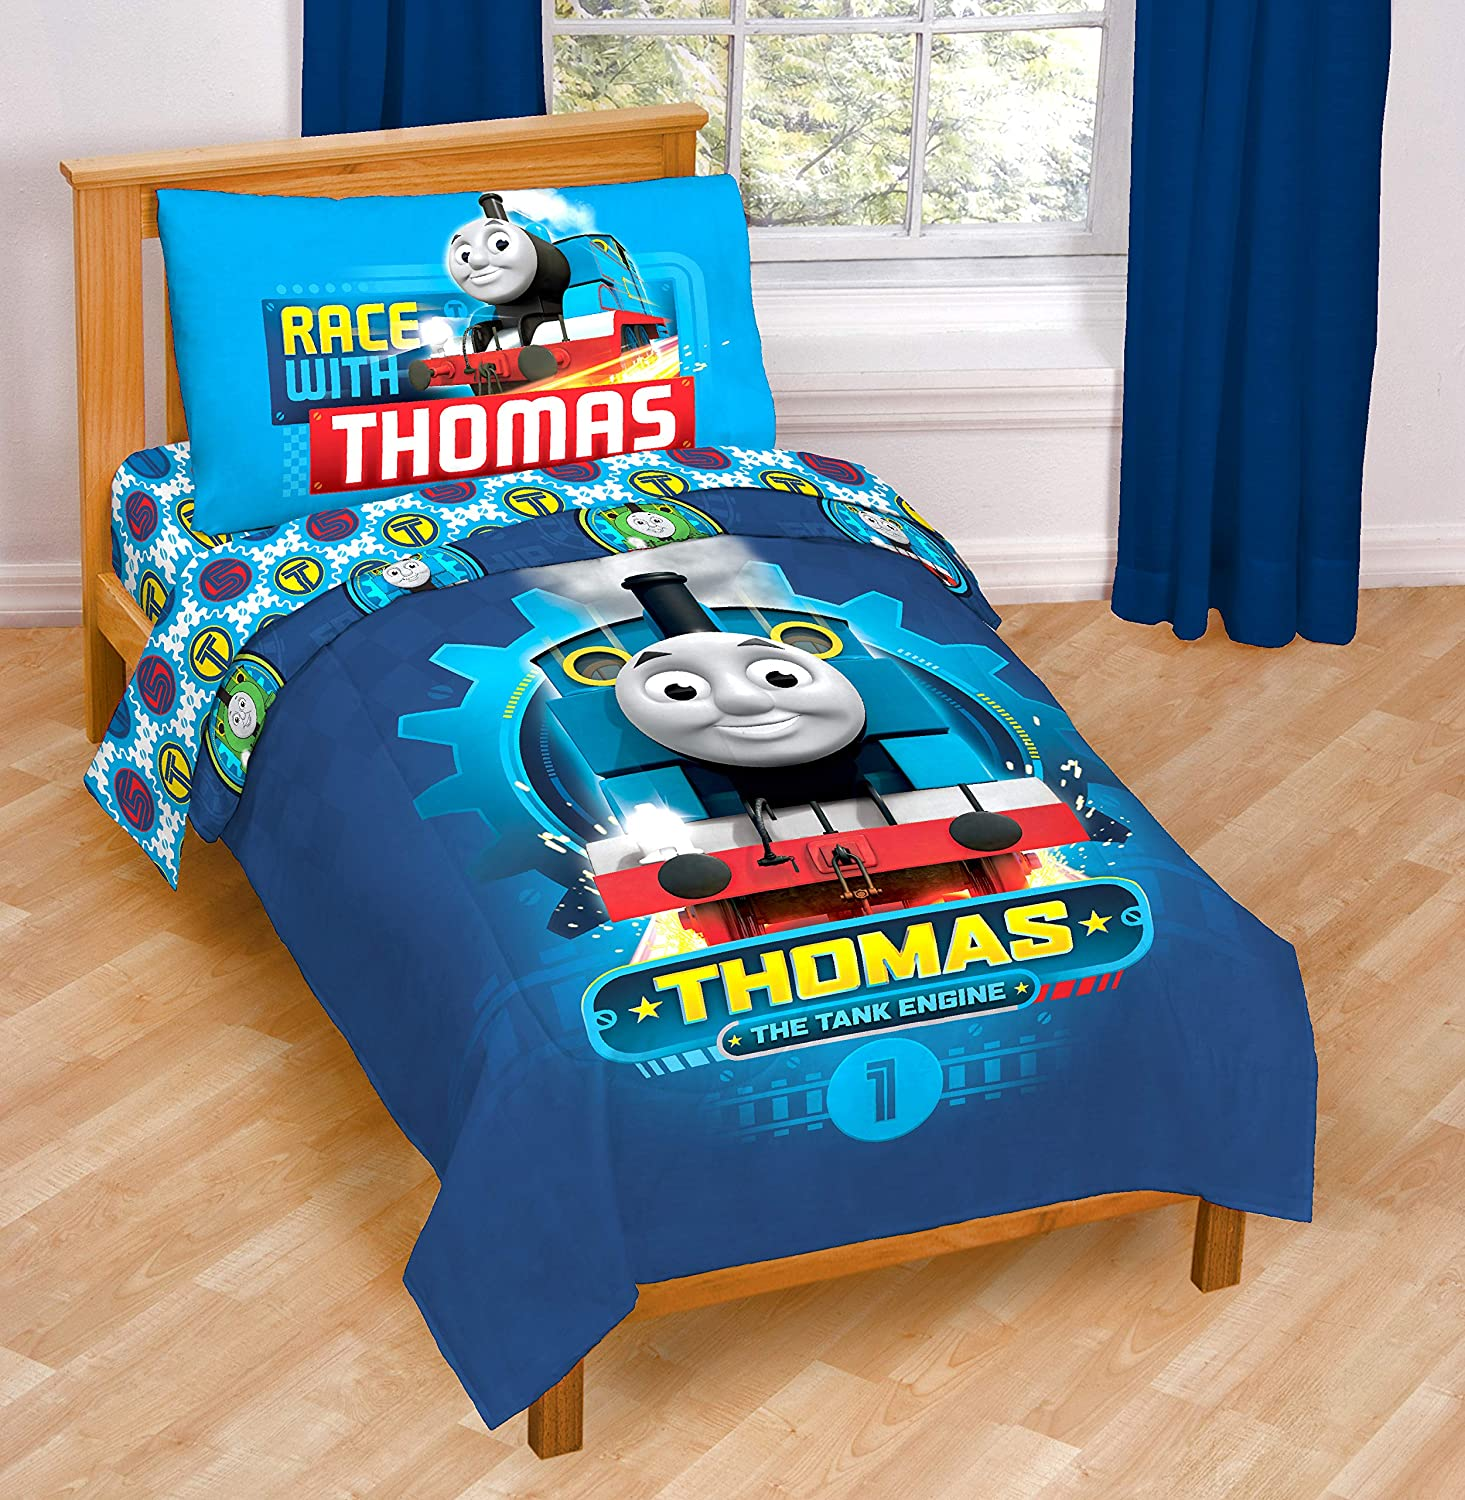 Nickelodeon Thomas & Friends The Tank Engine Race Friends 4 Piece Toddler Bed Set – Super Soft Microfiber Bed Set Includes Toddler Size Comforter & Sheet Set (Official Nickelodeon Product)